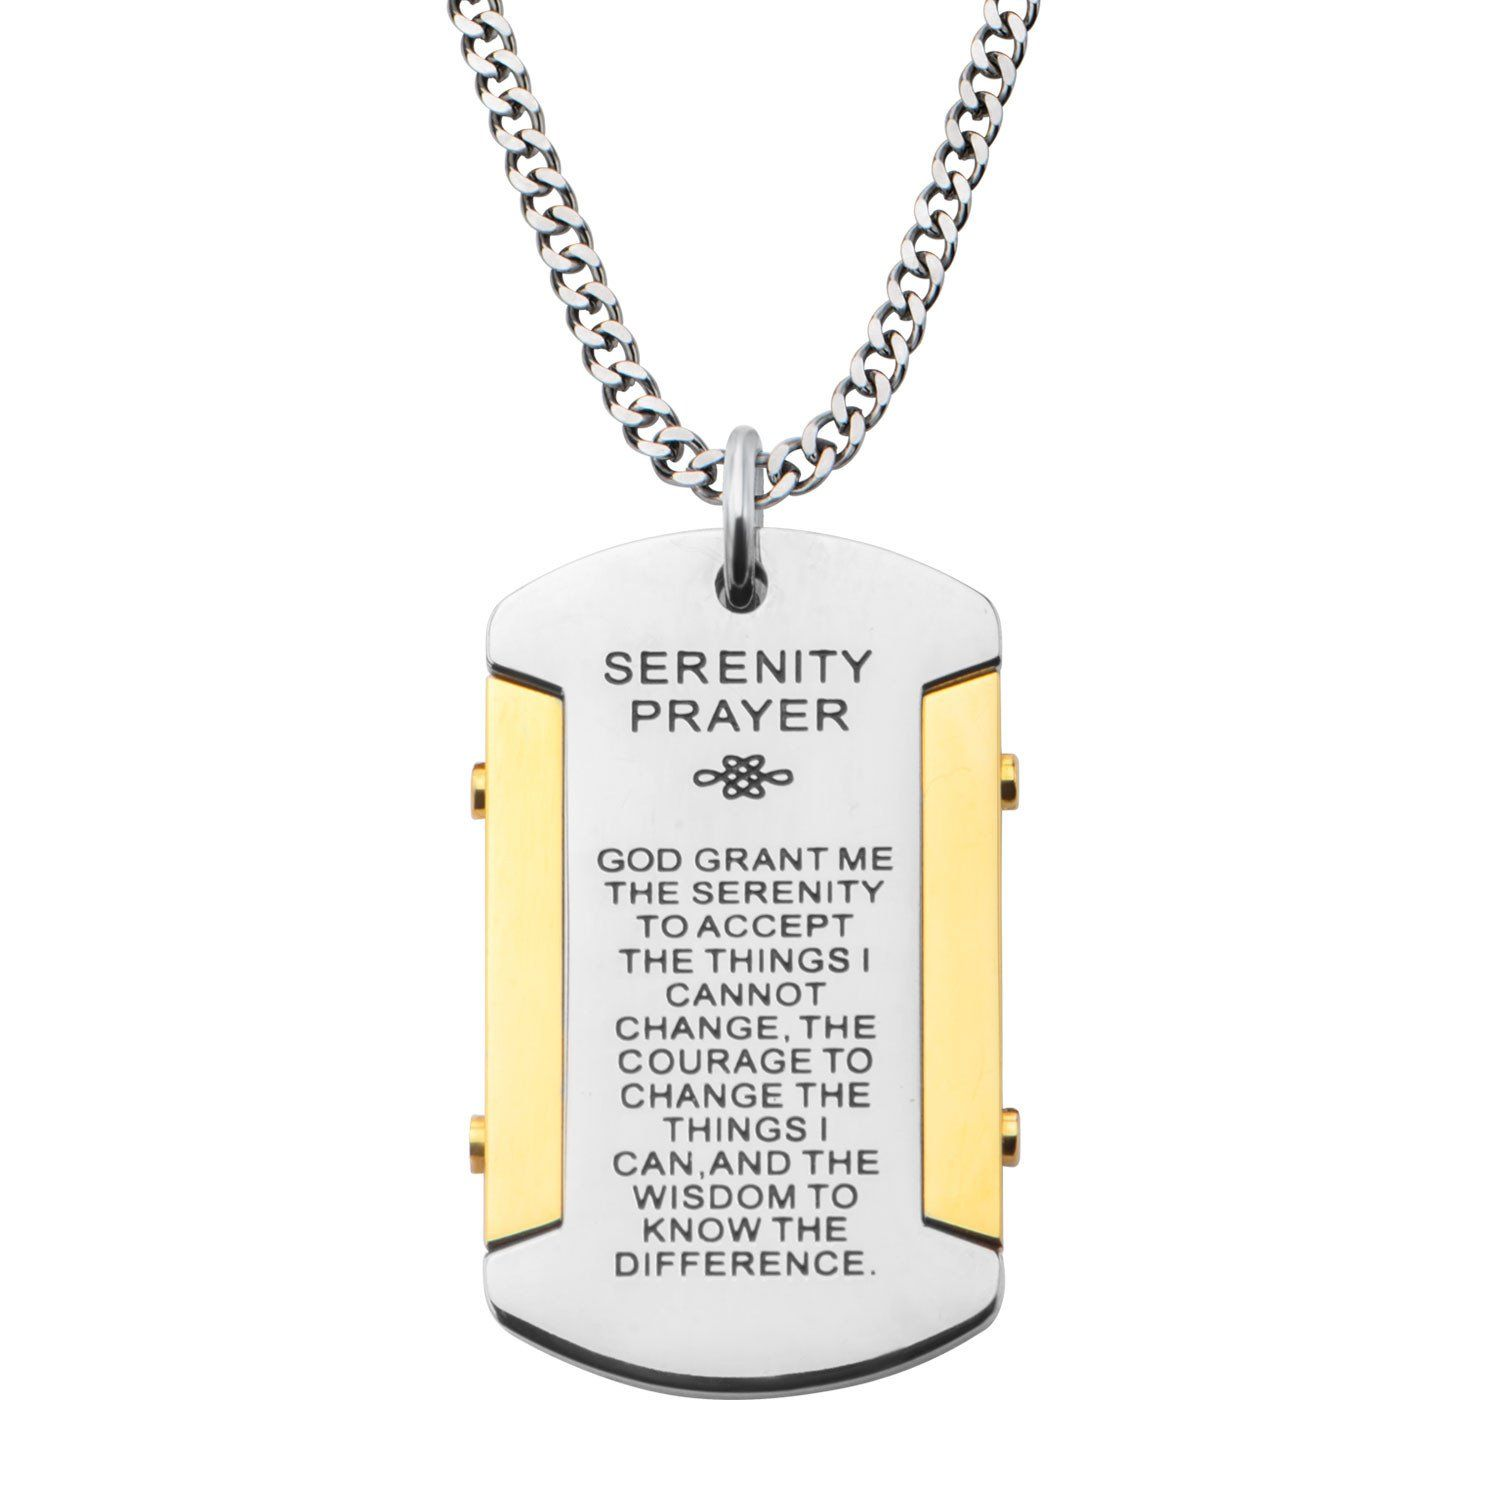 connections prayer stainless com from oval necklace pendant walmart hallmark serenity steel ip